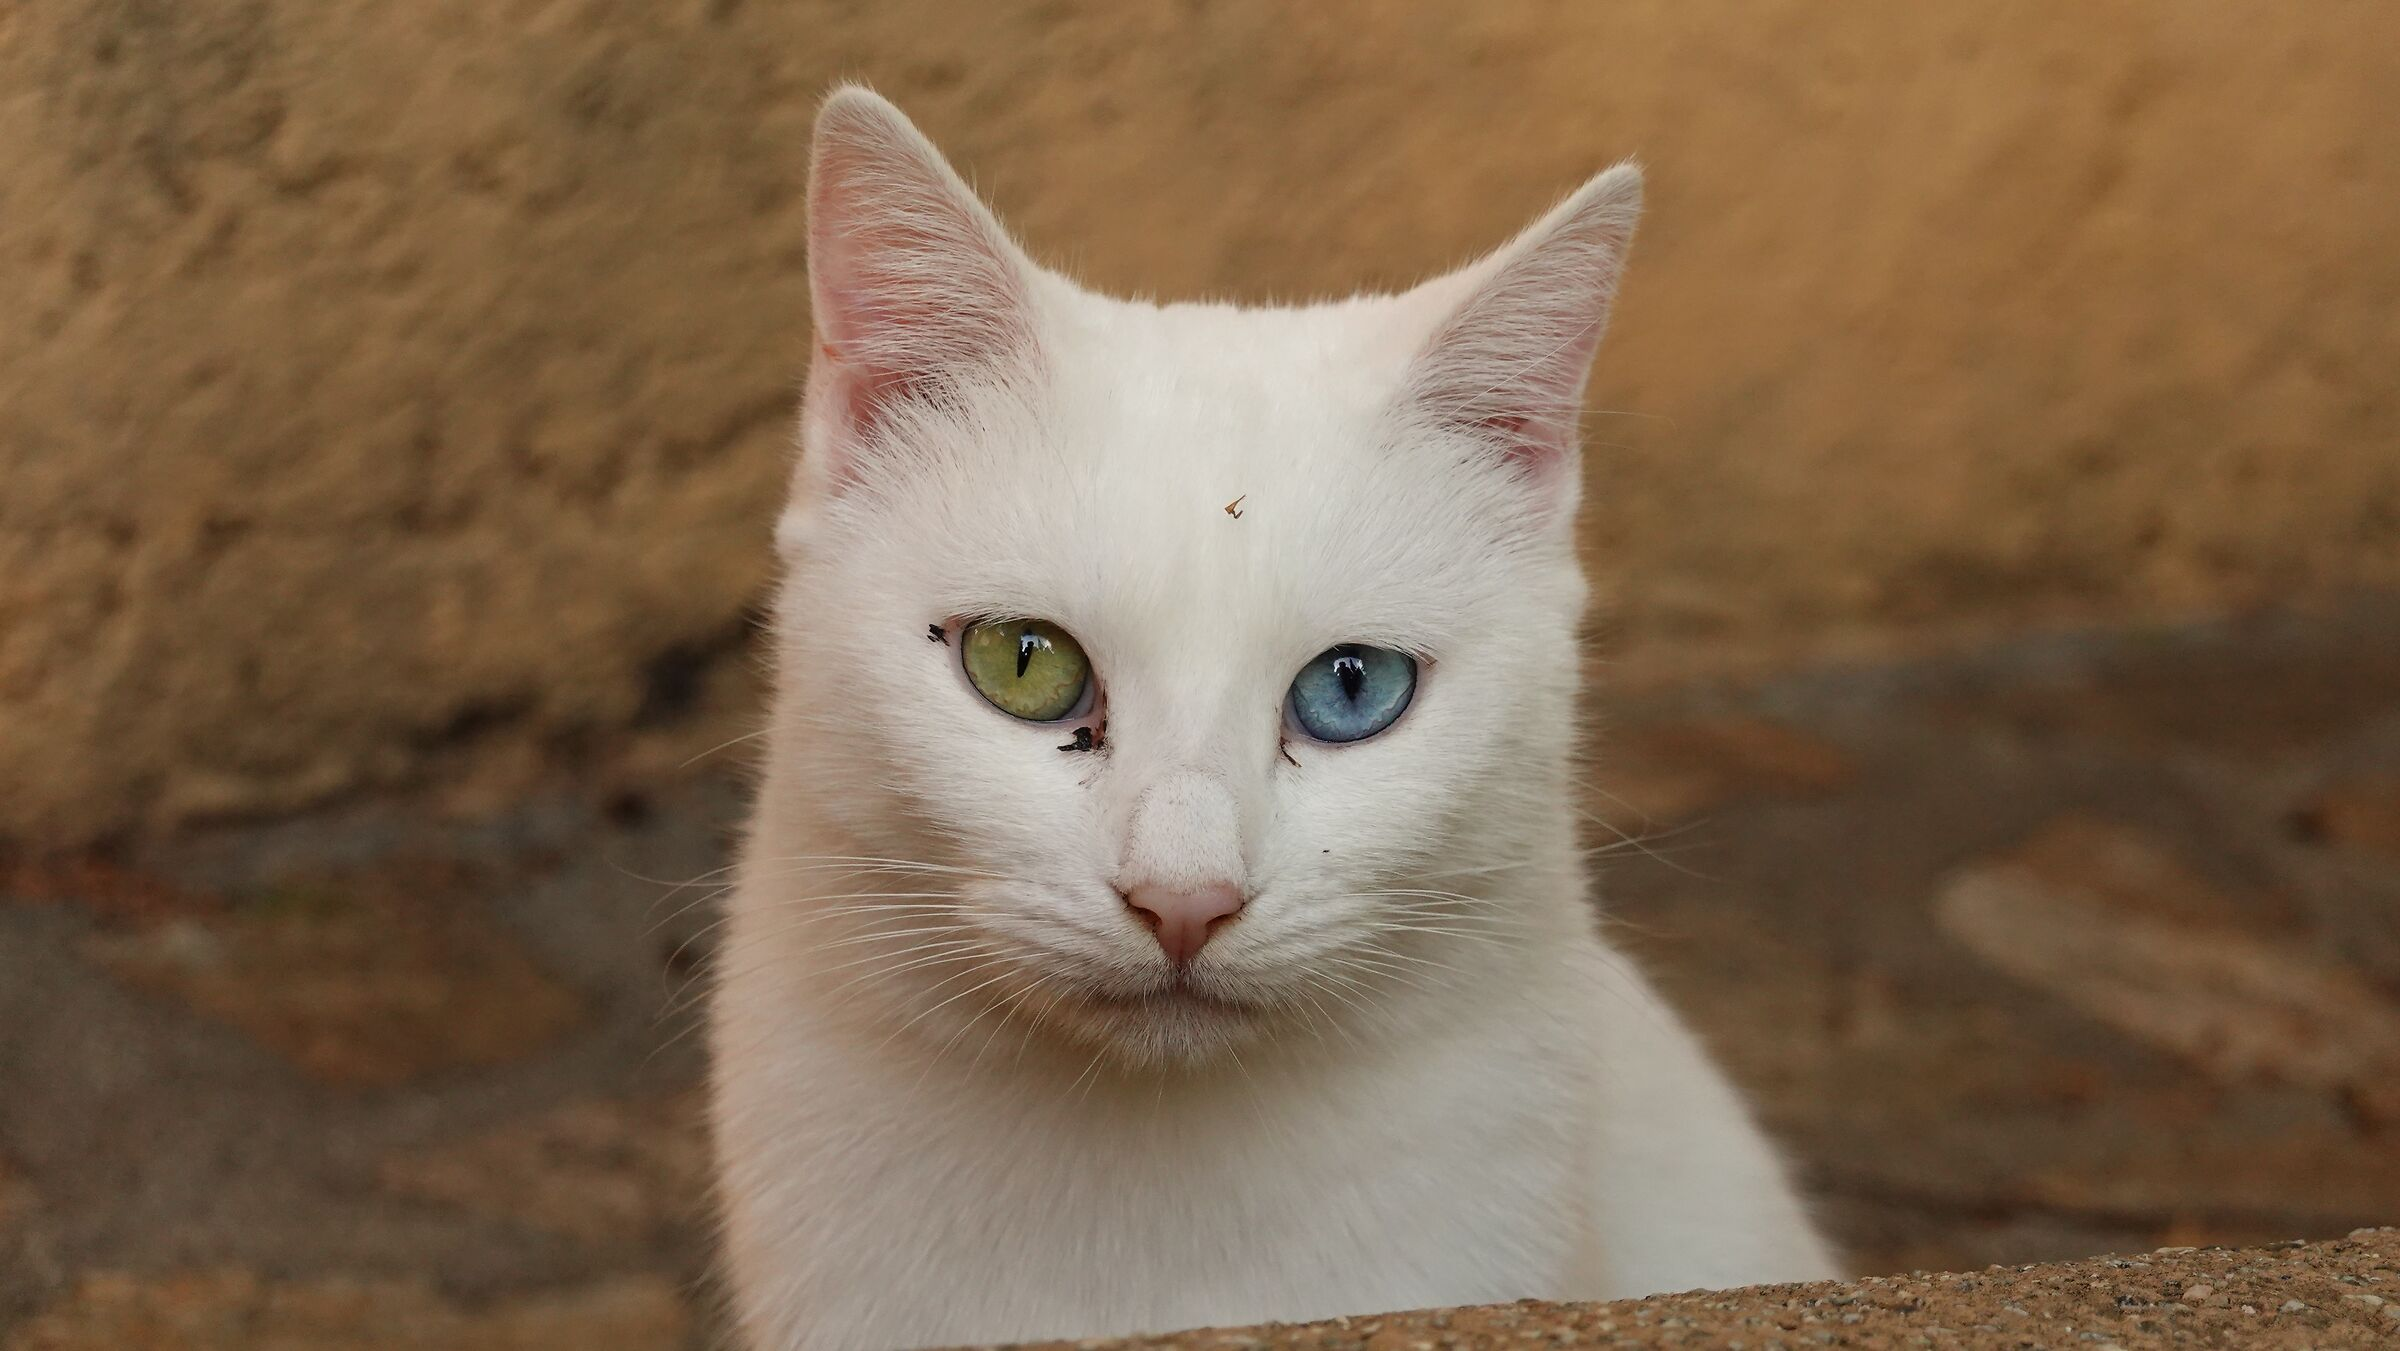 Cat with heterochromia...